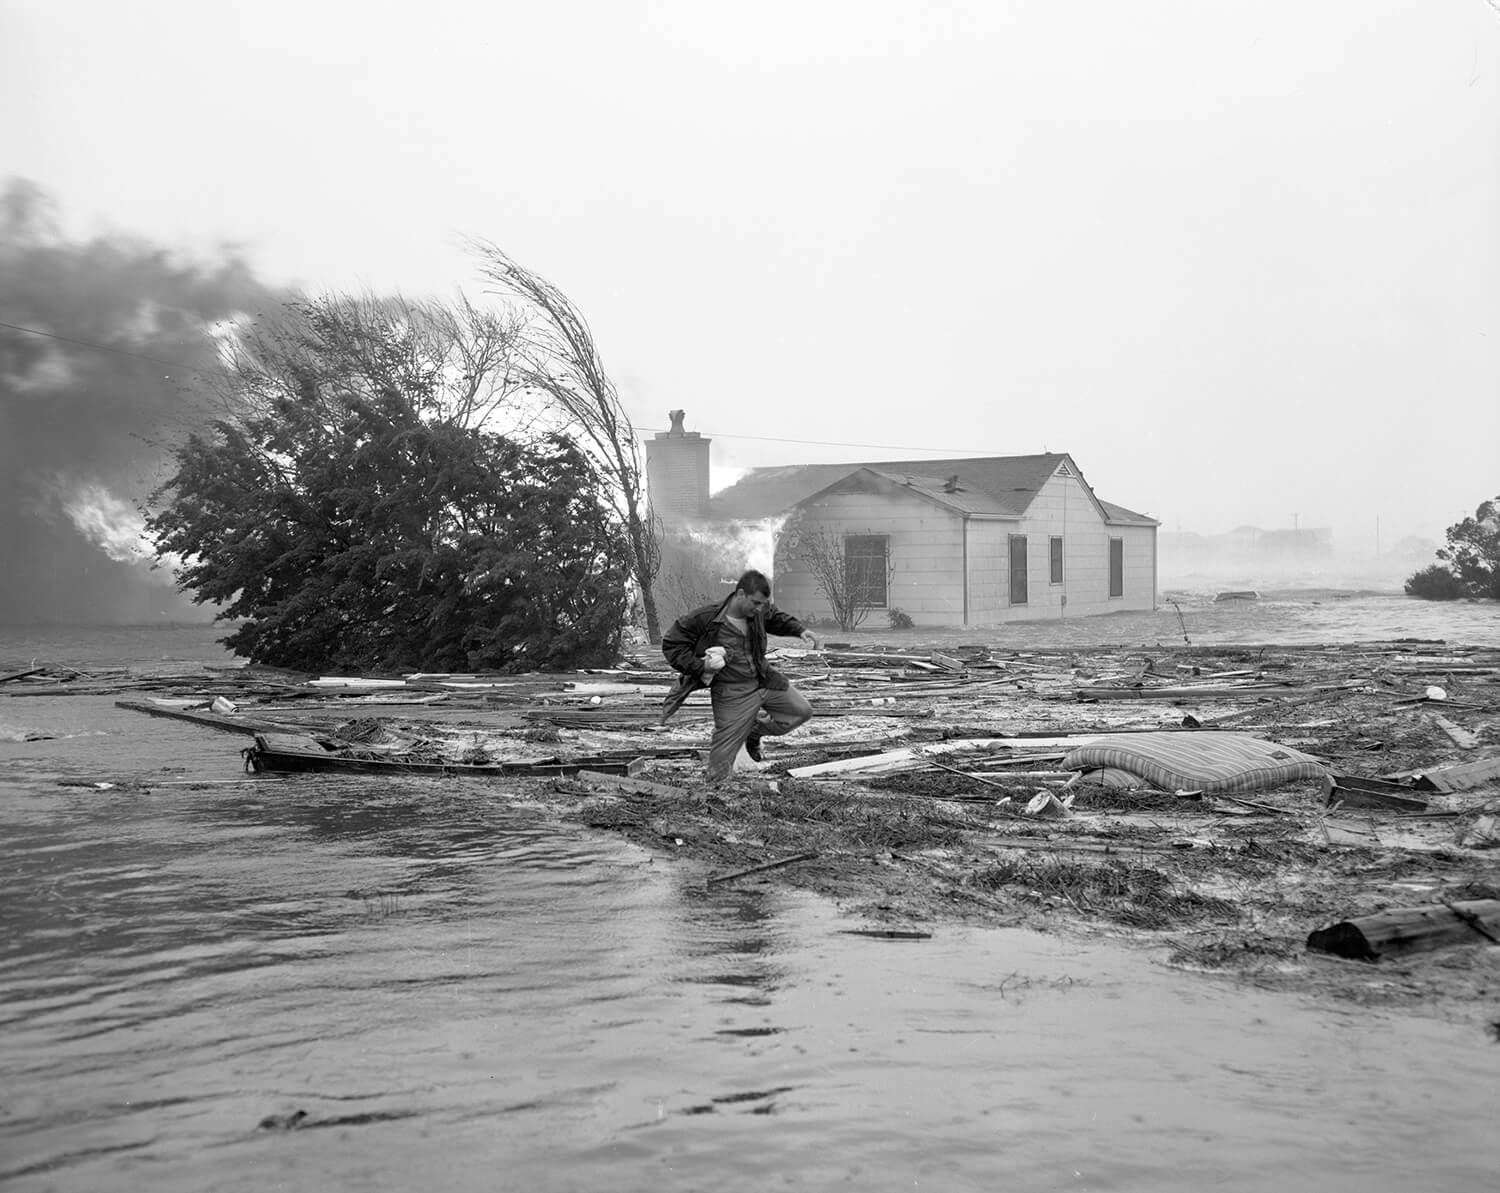 Wild Winds A History Of Hurricanes That Hit North Carolina Our State North Carolina Carolina Beach Overseas Travel